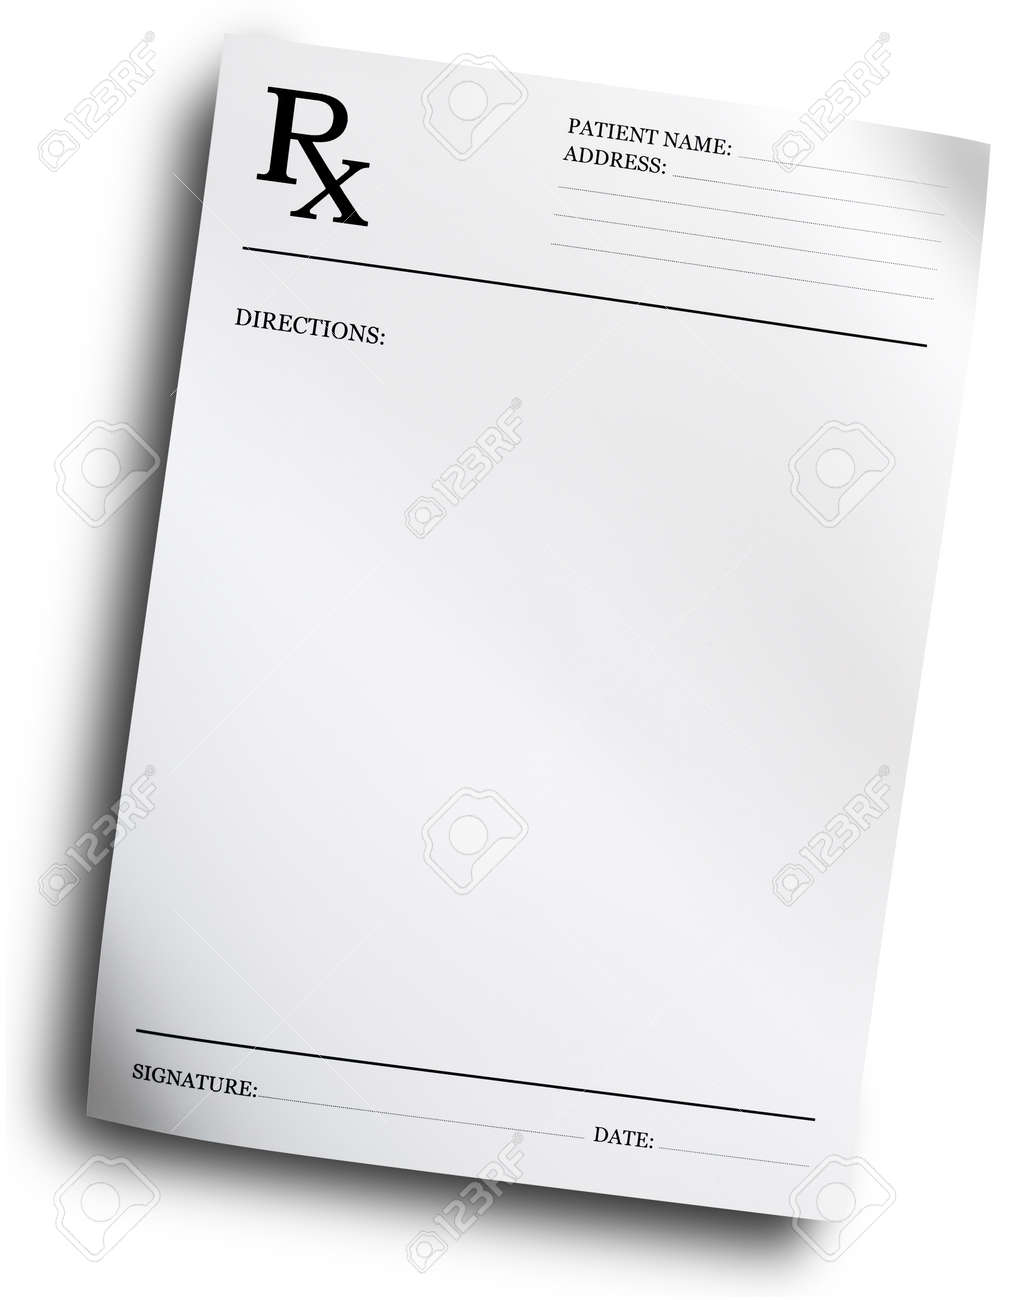 RX prescription form isolated on white background Stock Photo - 8873571